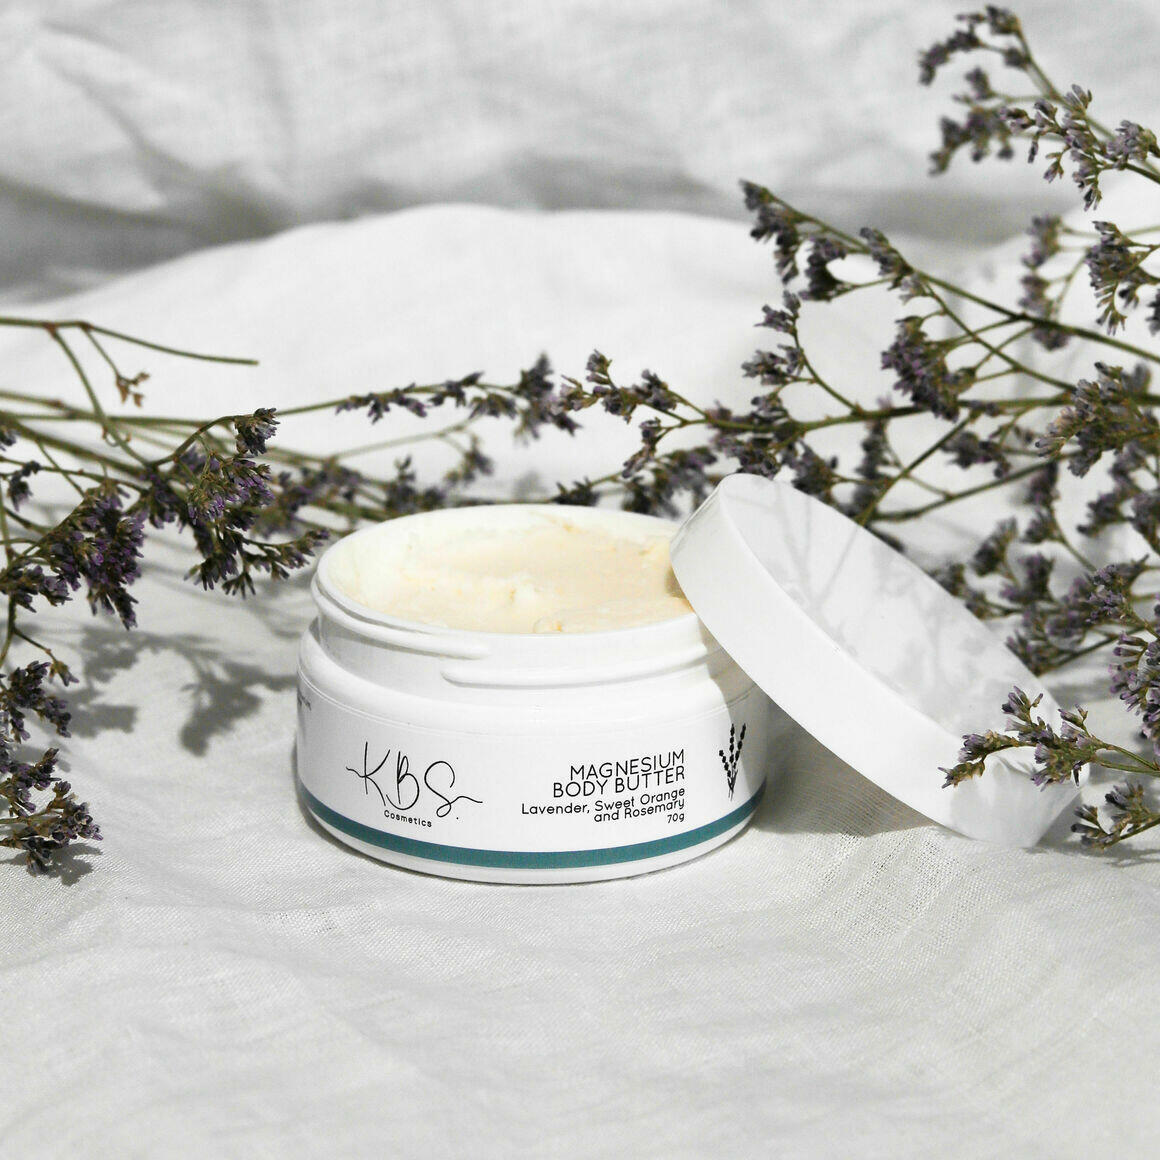 Magnesium Body Butter - Lavender, Sweet Orange and Rosemary   Trada Marketplace